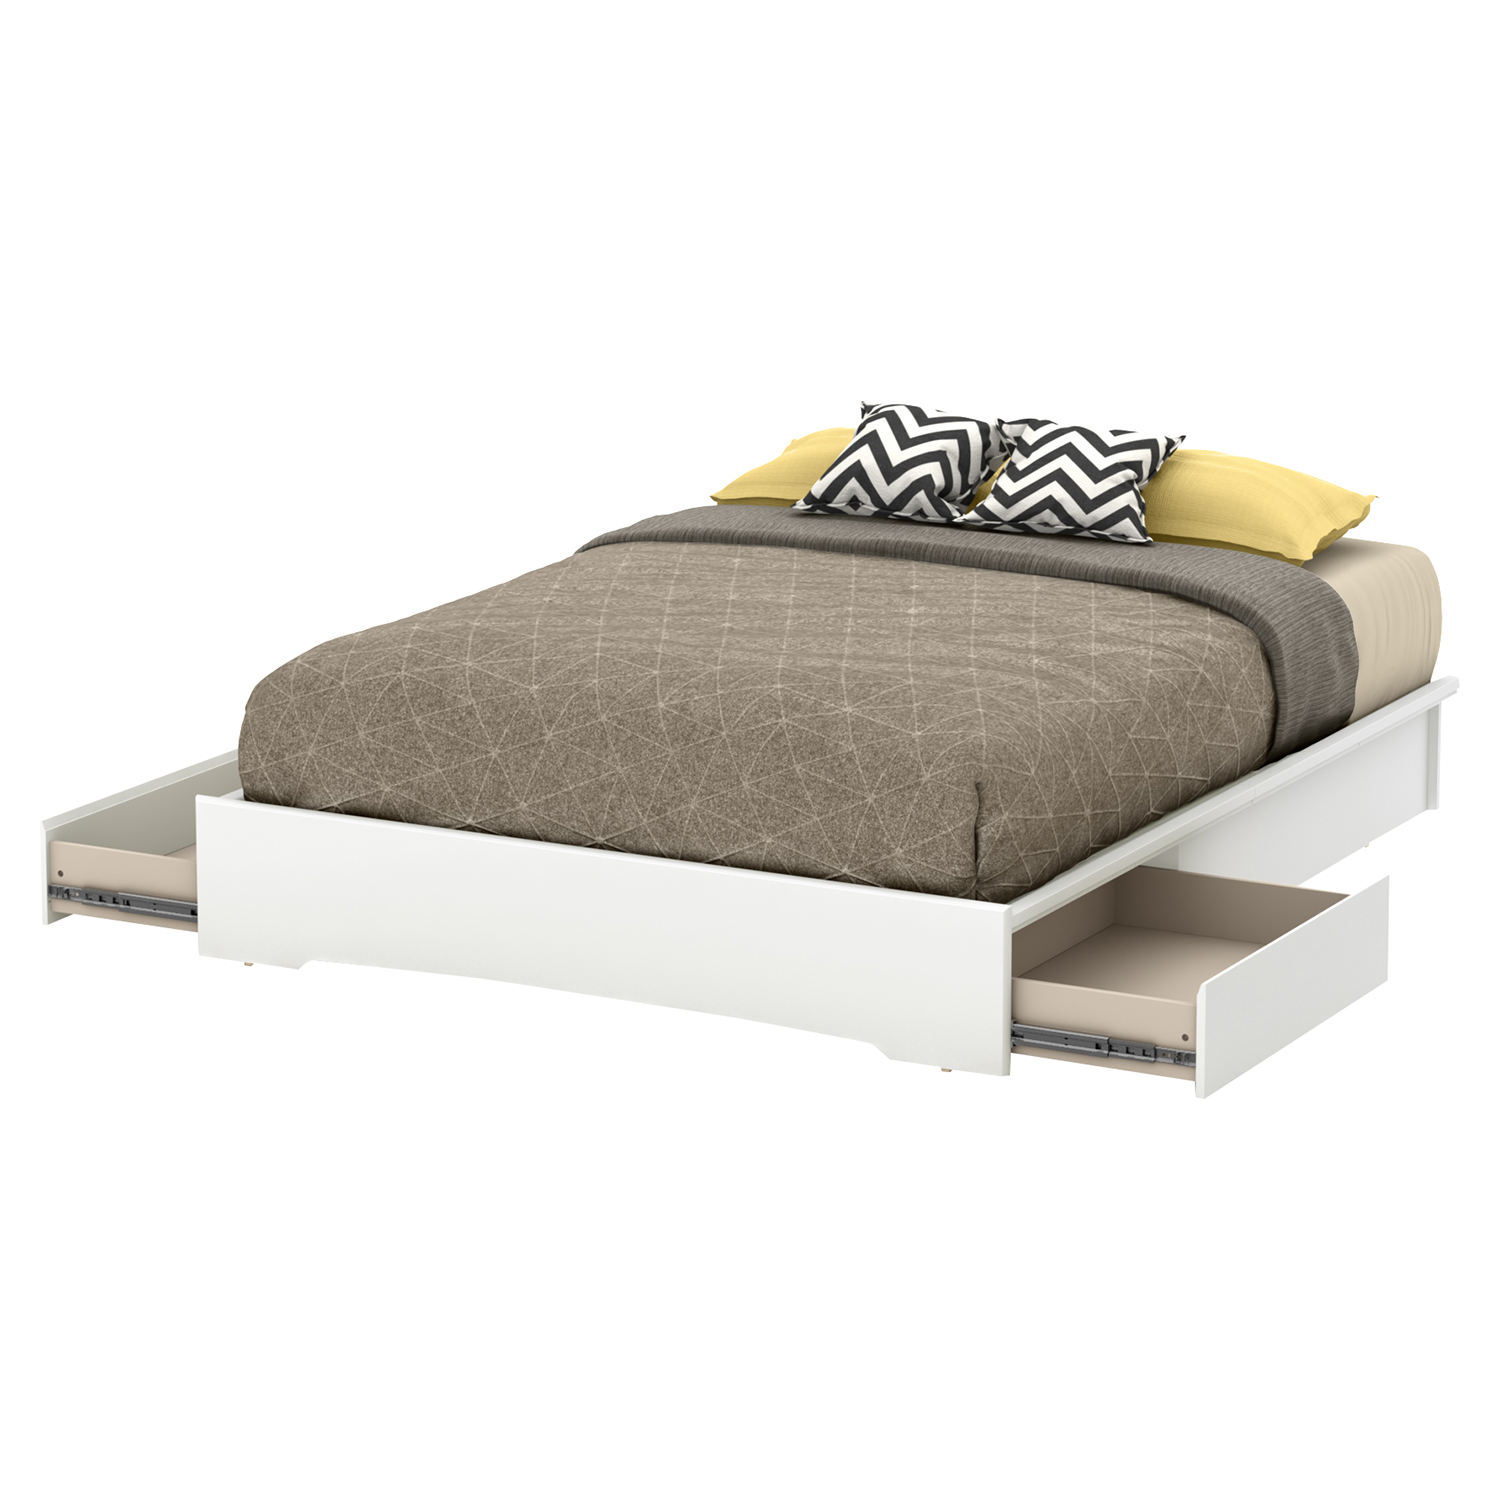 Basic Queen Platform Bed - 2 Drawers, Pure White - SS-10158